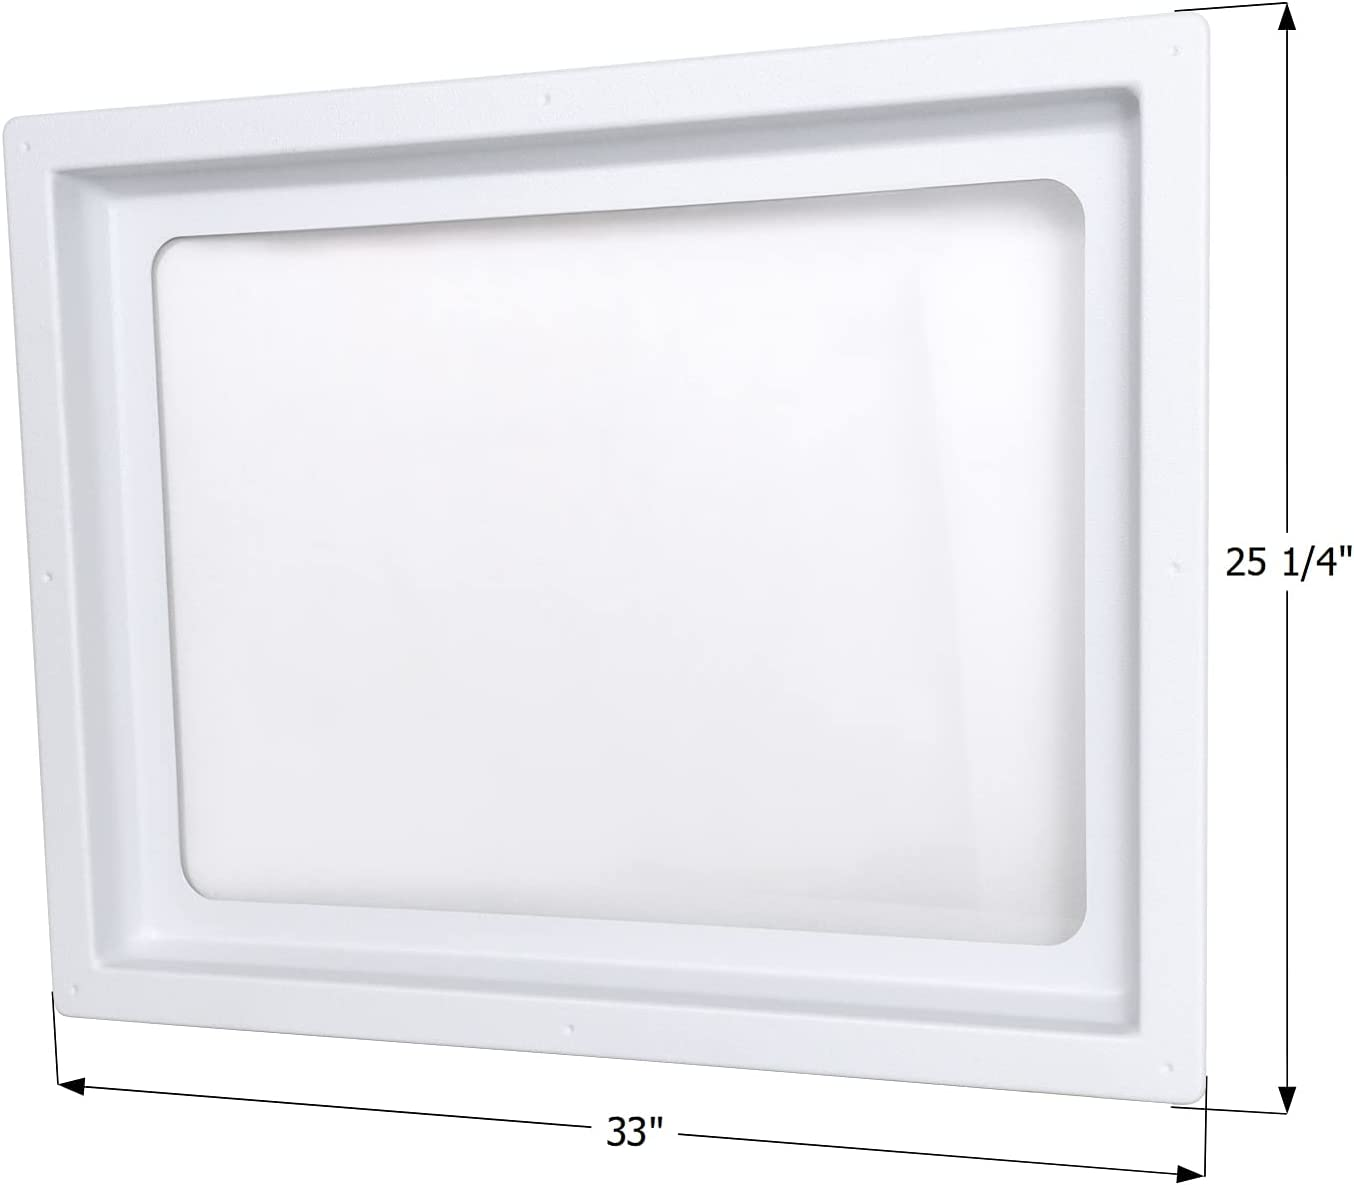 ICON 15092 Skylight Inner Dome Low Profile for SL2230 Ranking TOP19 Our shop OFFers the best service